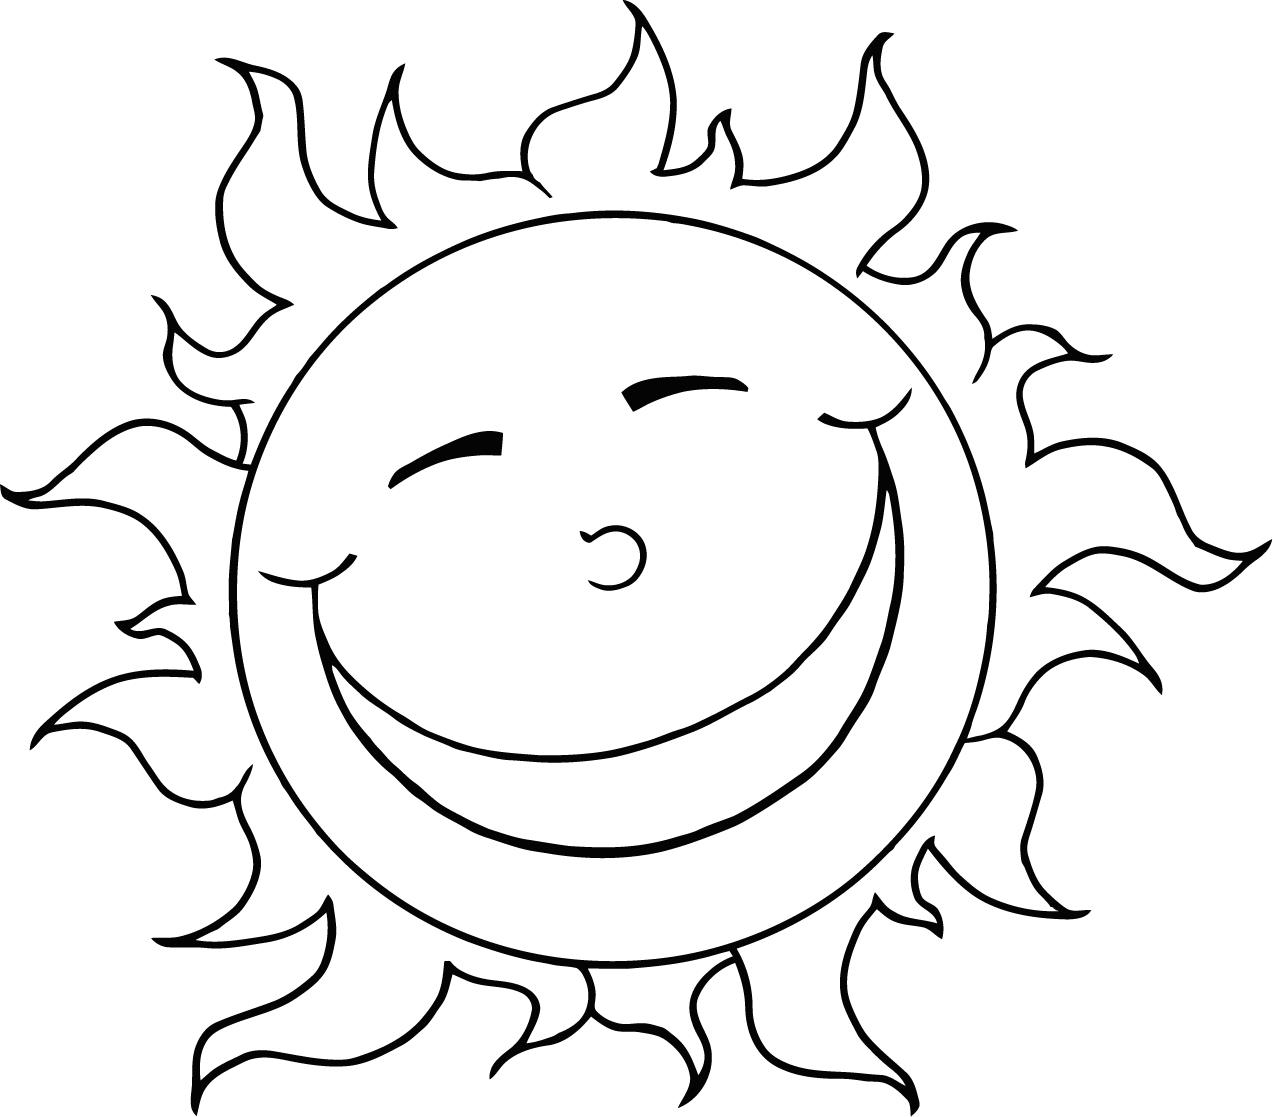 coloring page of the sun - Pictures For Kids To Color